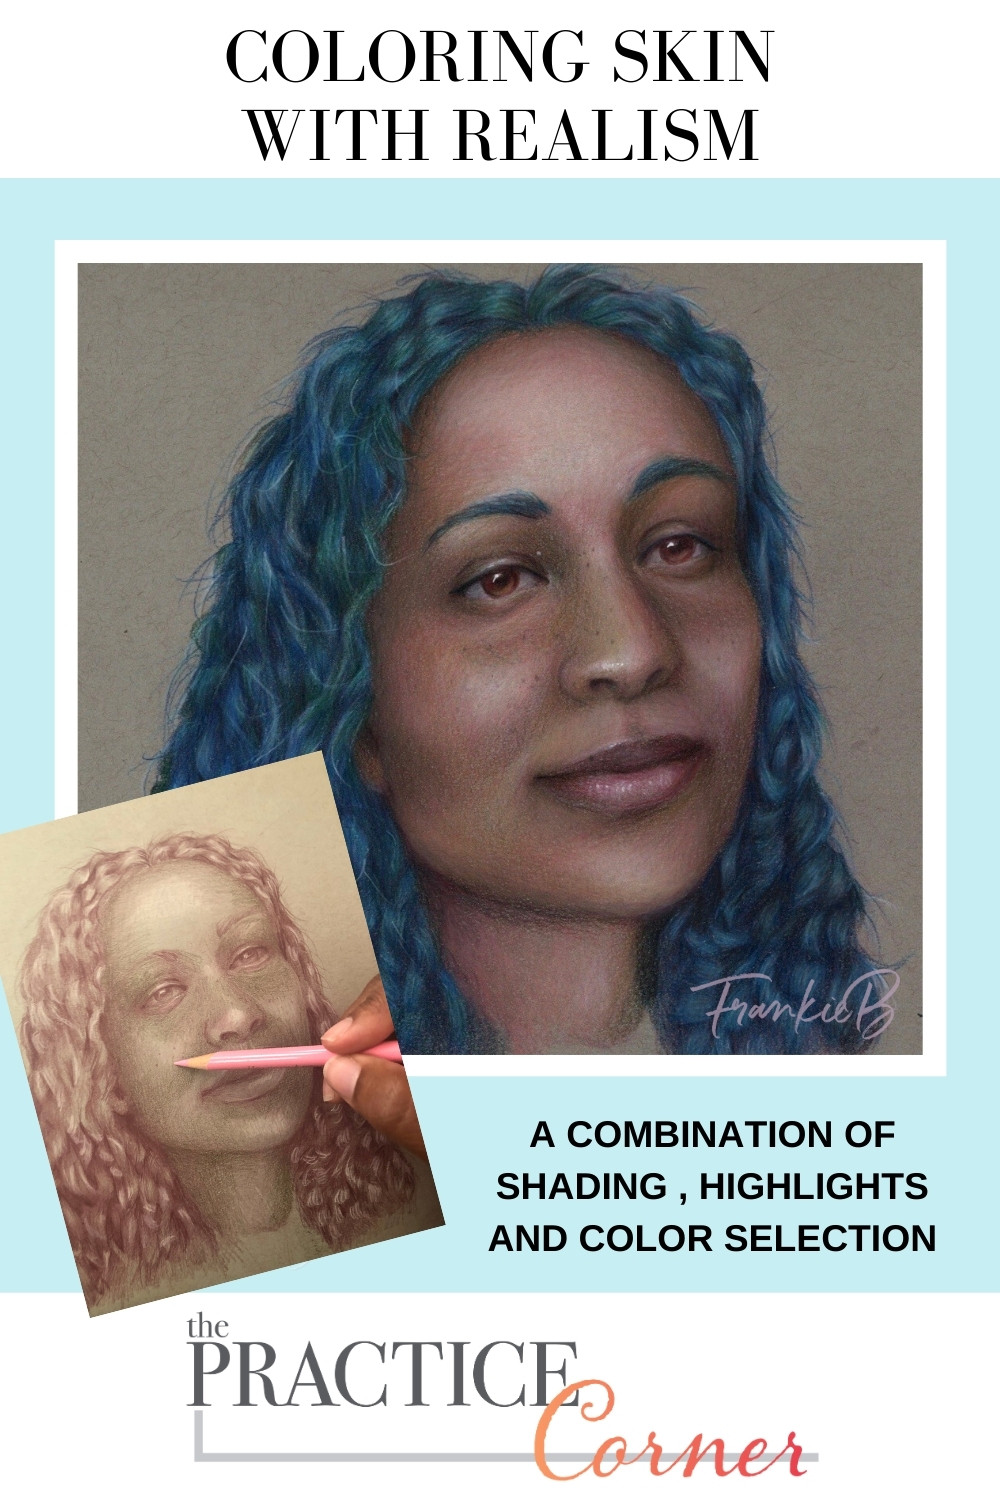 Combine shade, highlights and color to color realistic skin. | The Practice Corner | #realisticcoloring #coloringtechniques #copicmarkerpractice #coloredpencilpractice